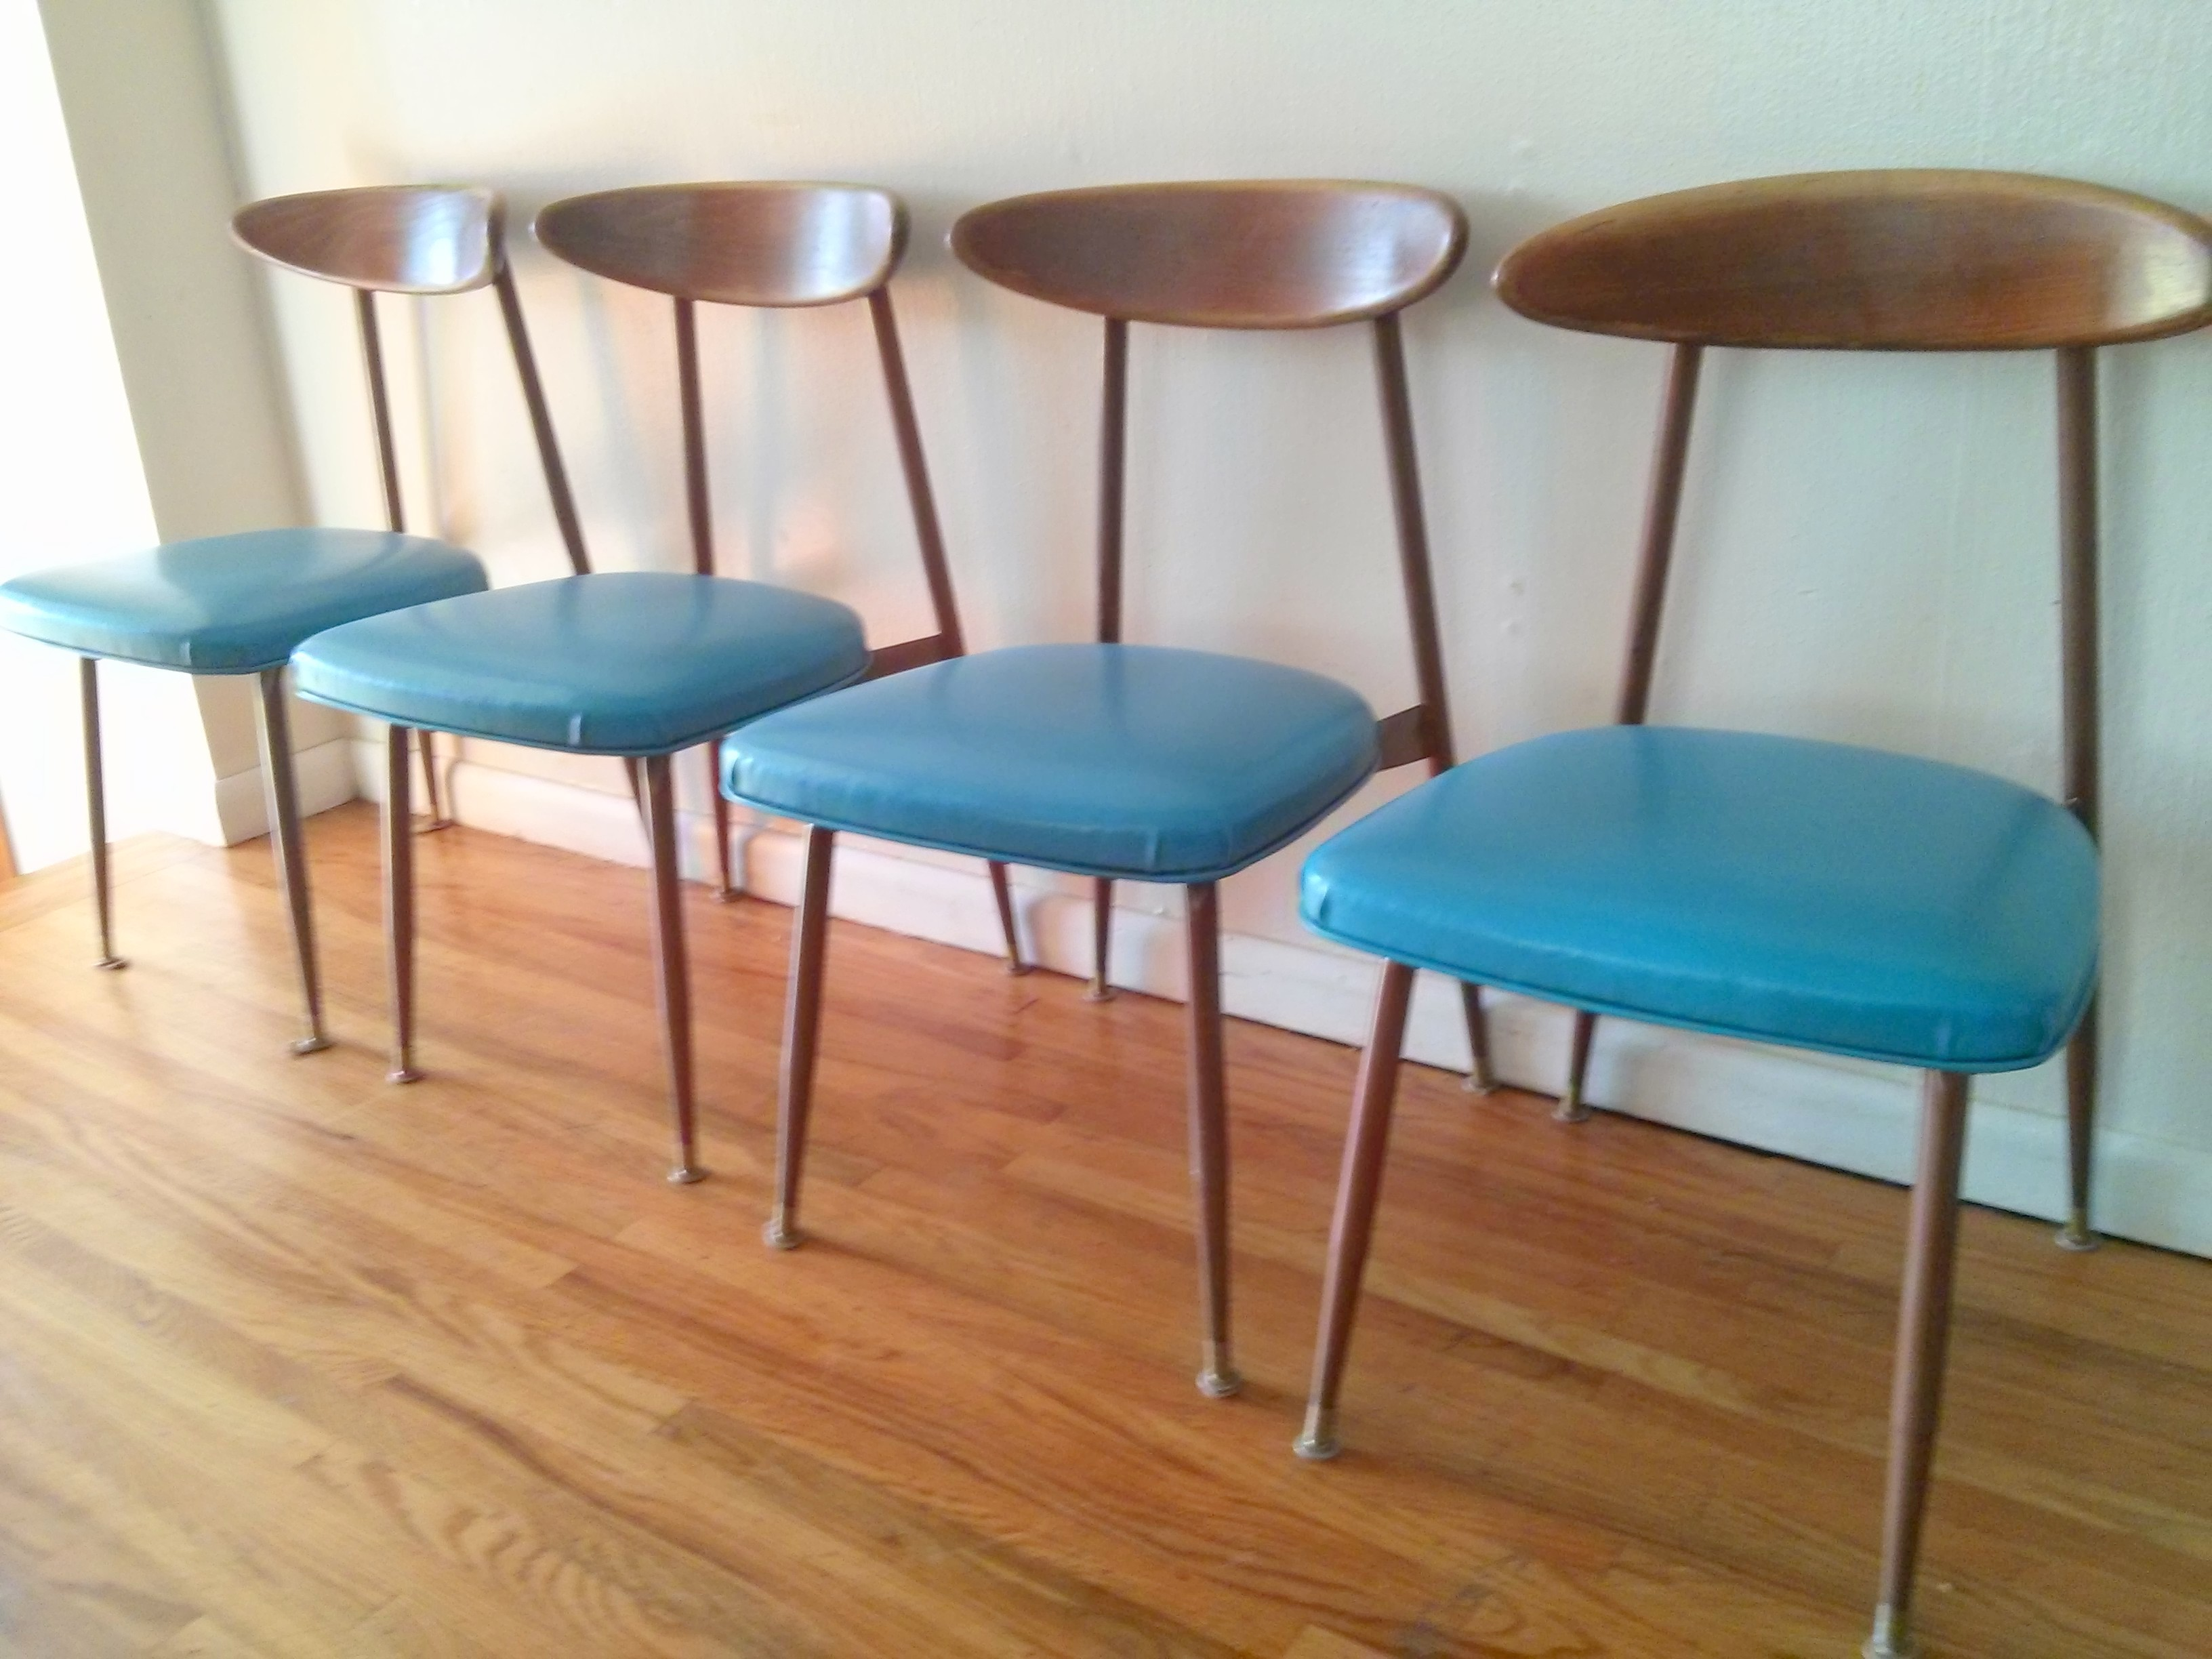 viko chairs set of 4 Viko chair and table ... : vintage kitchen table and chairs set - Cheerinfomania.Com